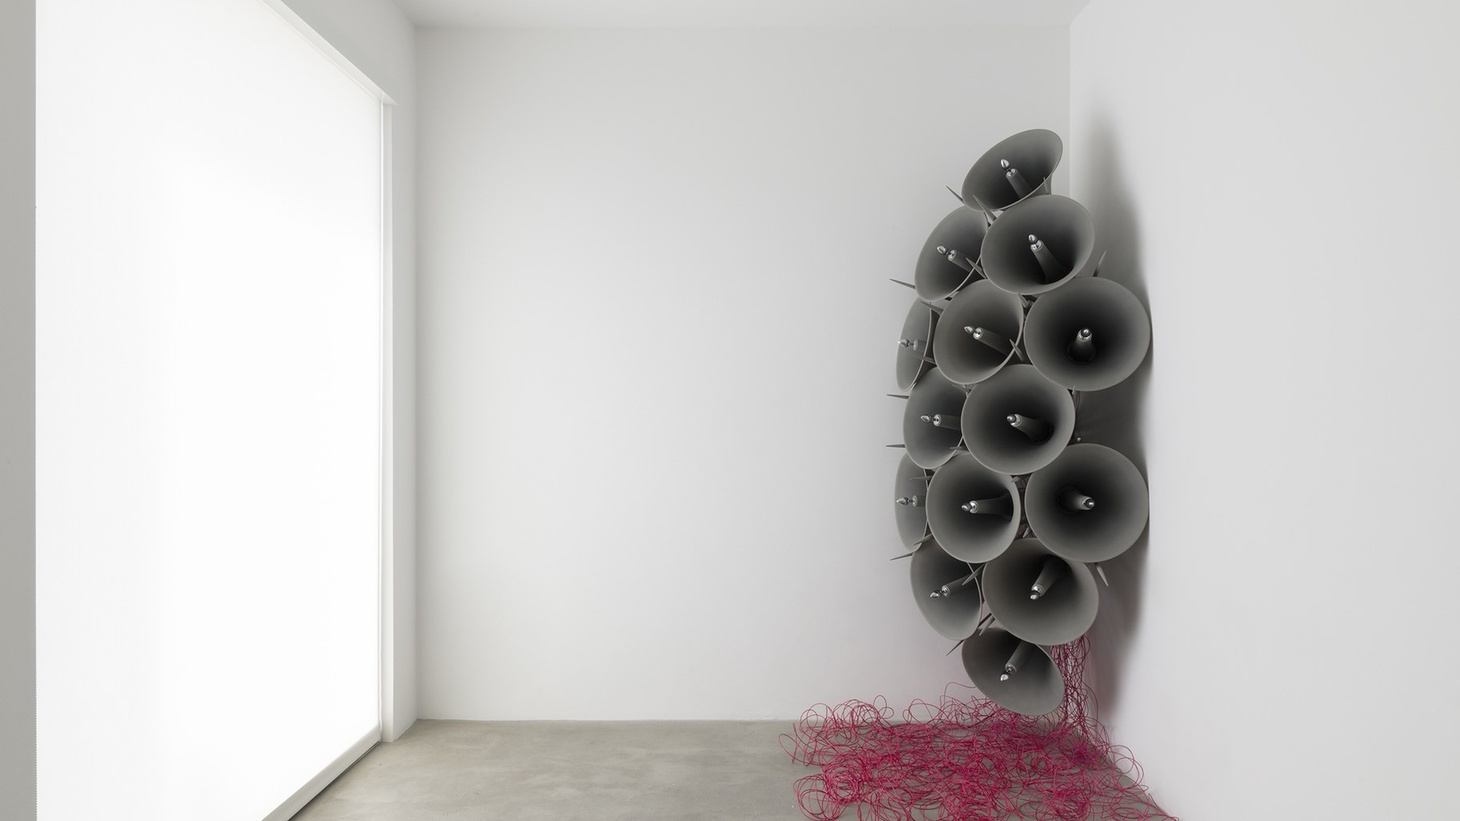 Jónsi, Í blóma (In bloom), 2019. Sixteen-channel sound installation; fourteen PA speakers, electrical wiring, two speakers, metal, wood, acrylic paint, chrome butt plugs, cadaverine scent, Sculpture: 116 x 87 x 44 inches; 294.6 x 221 x 111.8 cm, Installation dimensions variable. Duration: 21 minutes.